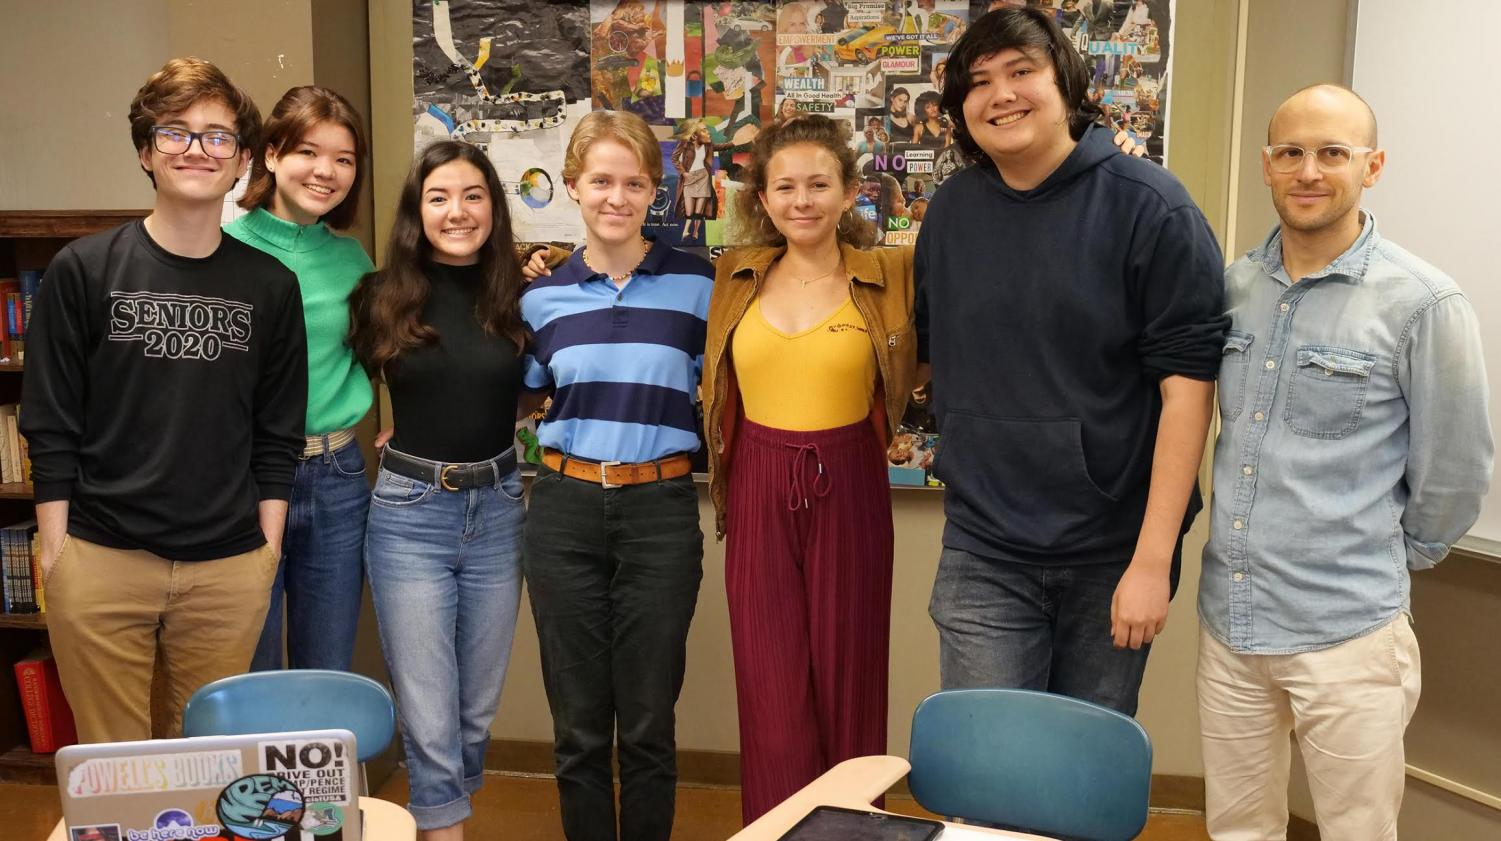 Ka Nalu Ola staff members pose for a picture together, starting on the left: Morgan Groves, Solana Isgar, Brooke Johnson, Fiona Sievert, Isabella Miki, Griffin Au, Ken Baldino. Photo contributed by Scot Allen, Associate Director of Communications for Mid-Pacific.